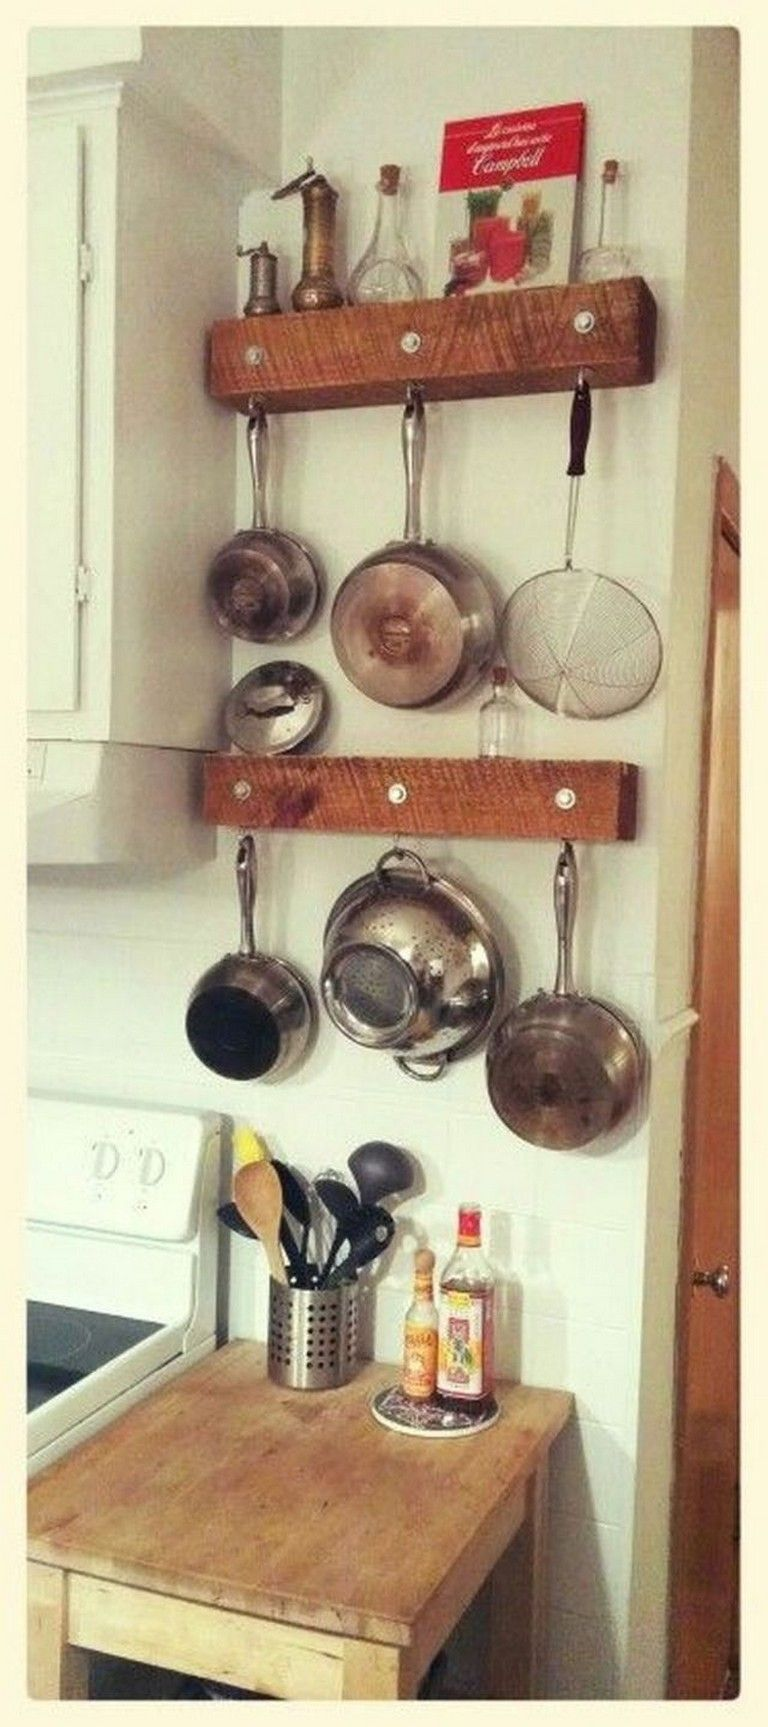 15 Beautiful Decorative Rustic Storage Projects For Your Kitchen Hanging Racks Hanging Pots Decor